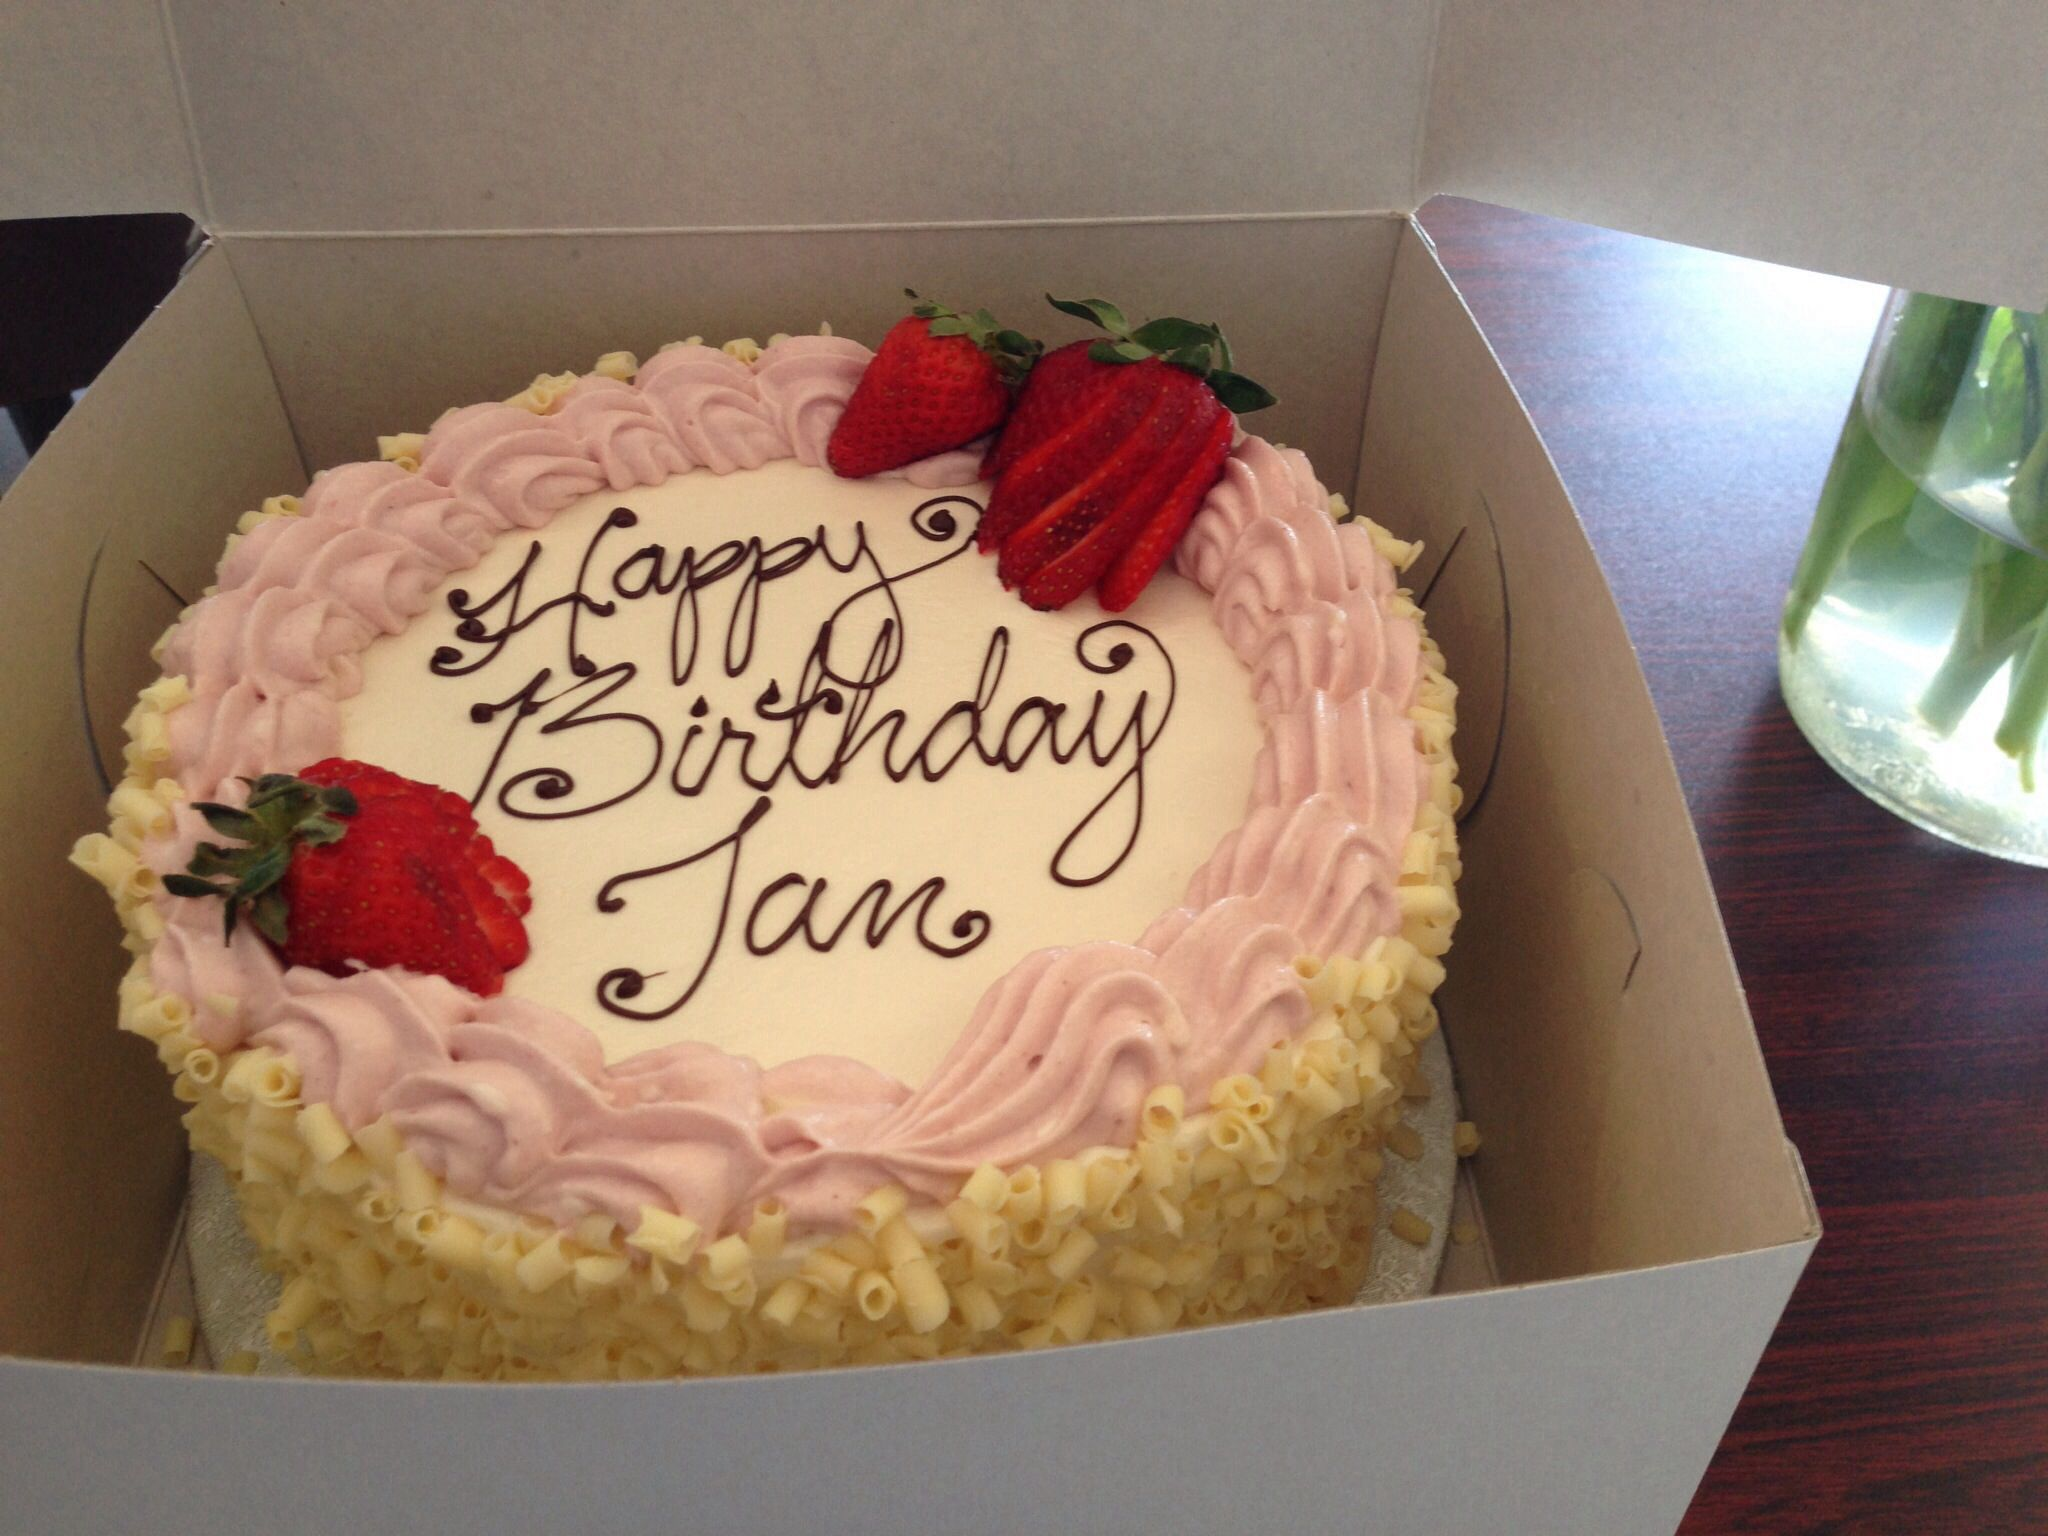 Pretty white chocolate curls and fresh strawberries adorn this simple birthday cake. Nut-free bakery White Rock BC